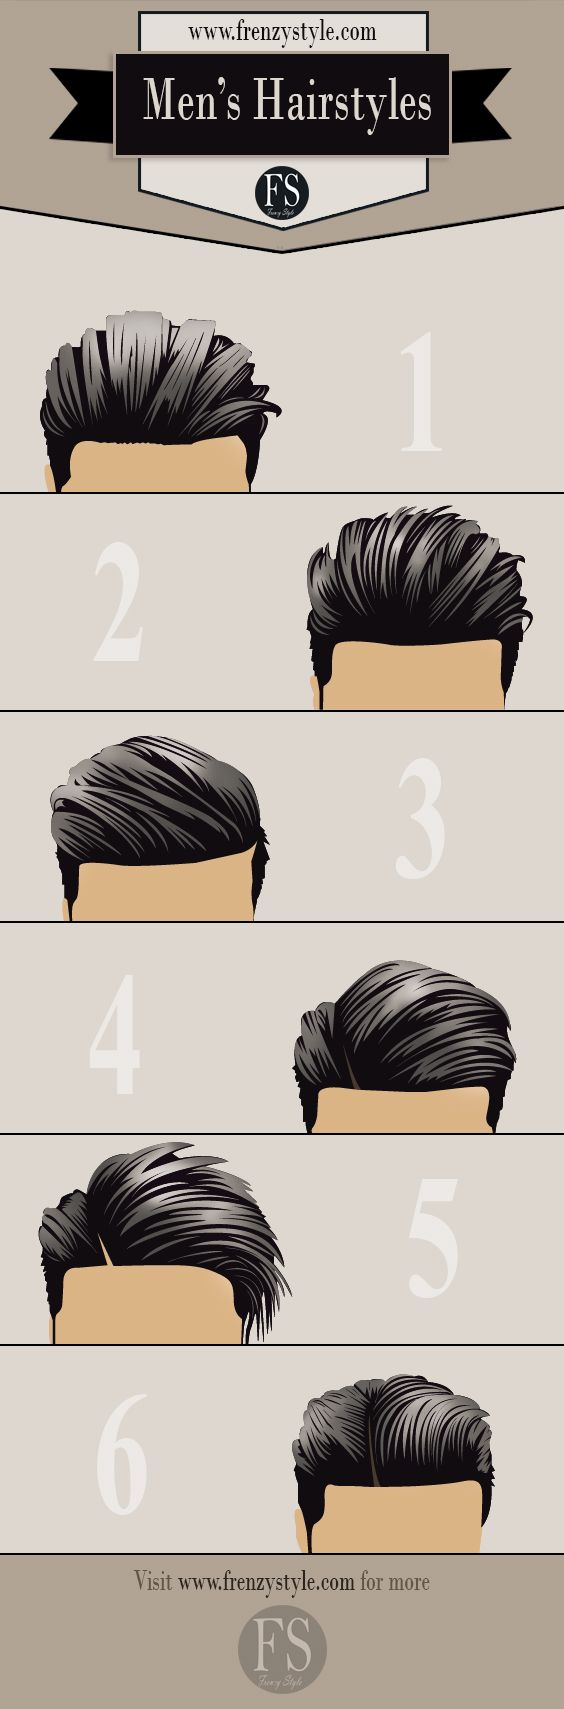 Best mens haircut las vegas cdf contratistas cdfcontratistas on pinterest